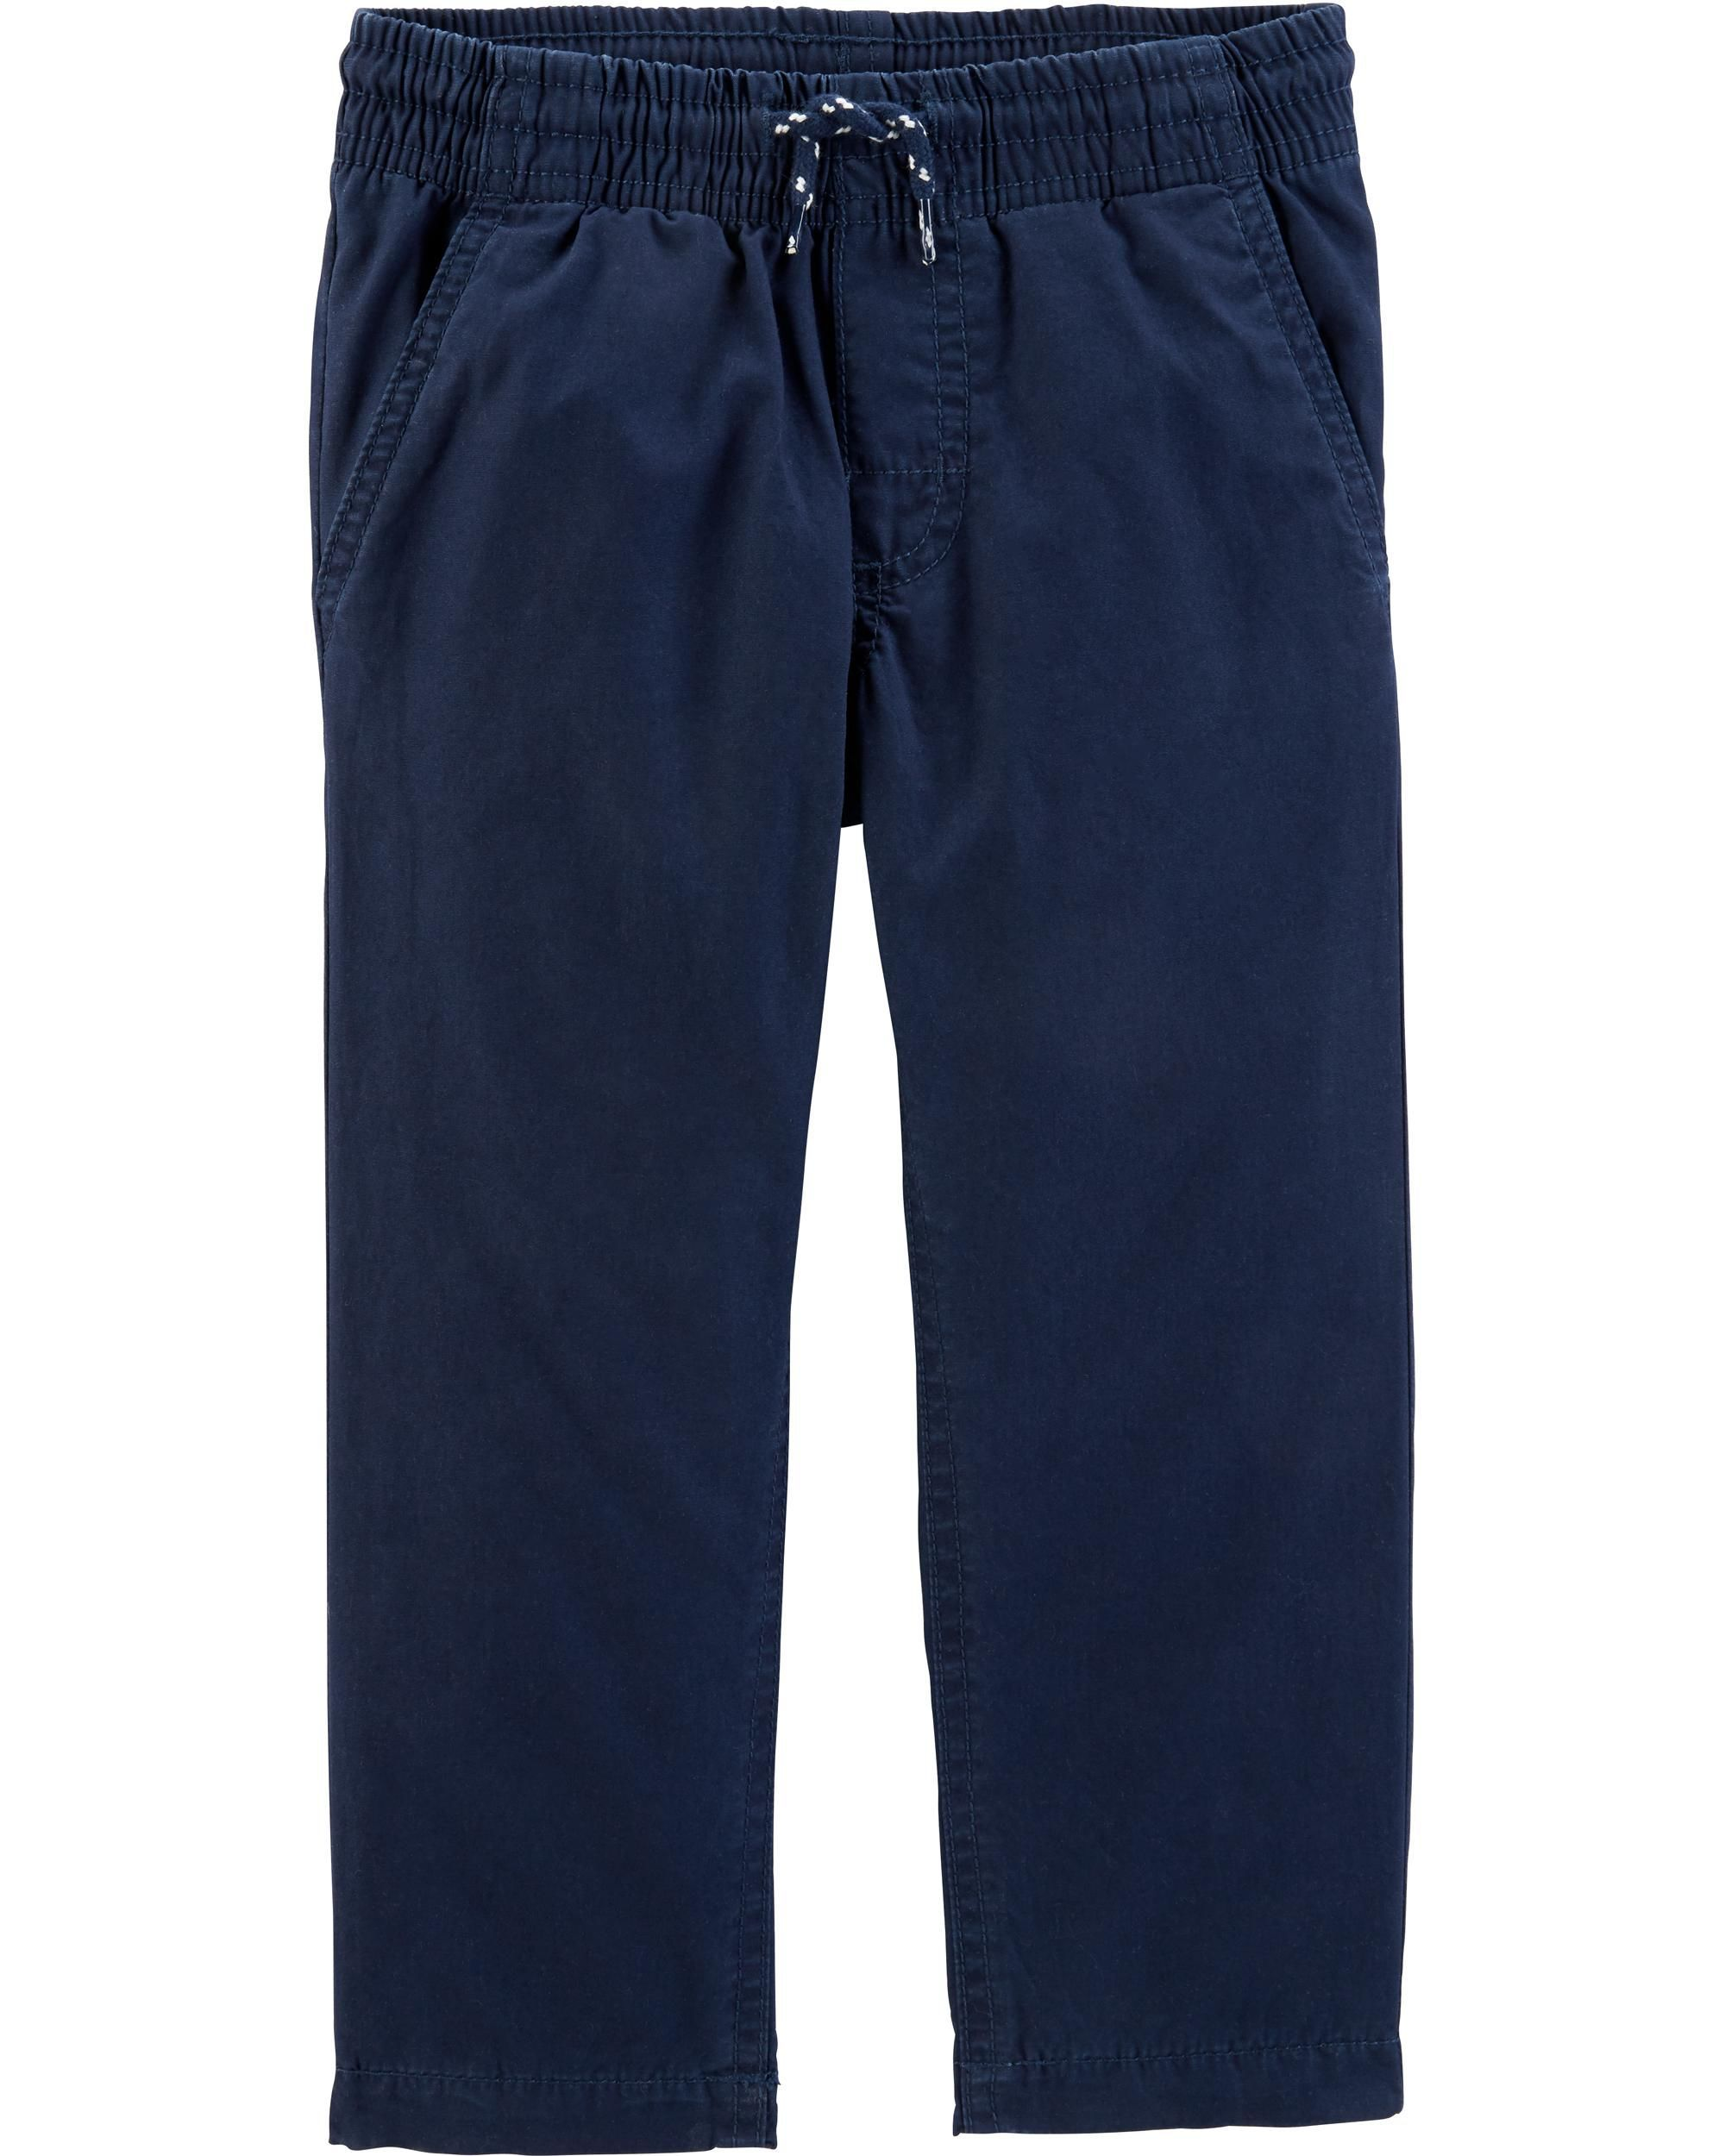 dbbeb6176 Lined Pull-On Pants | carters | Toddler pants, Toddler jeans ...